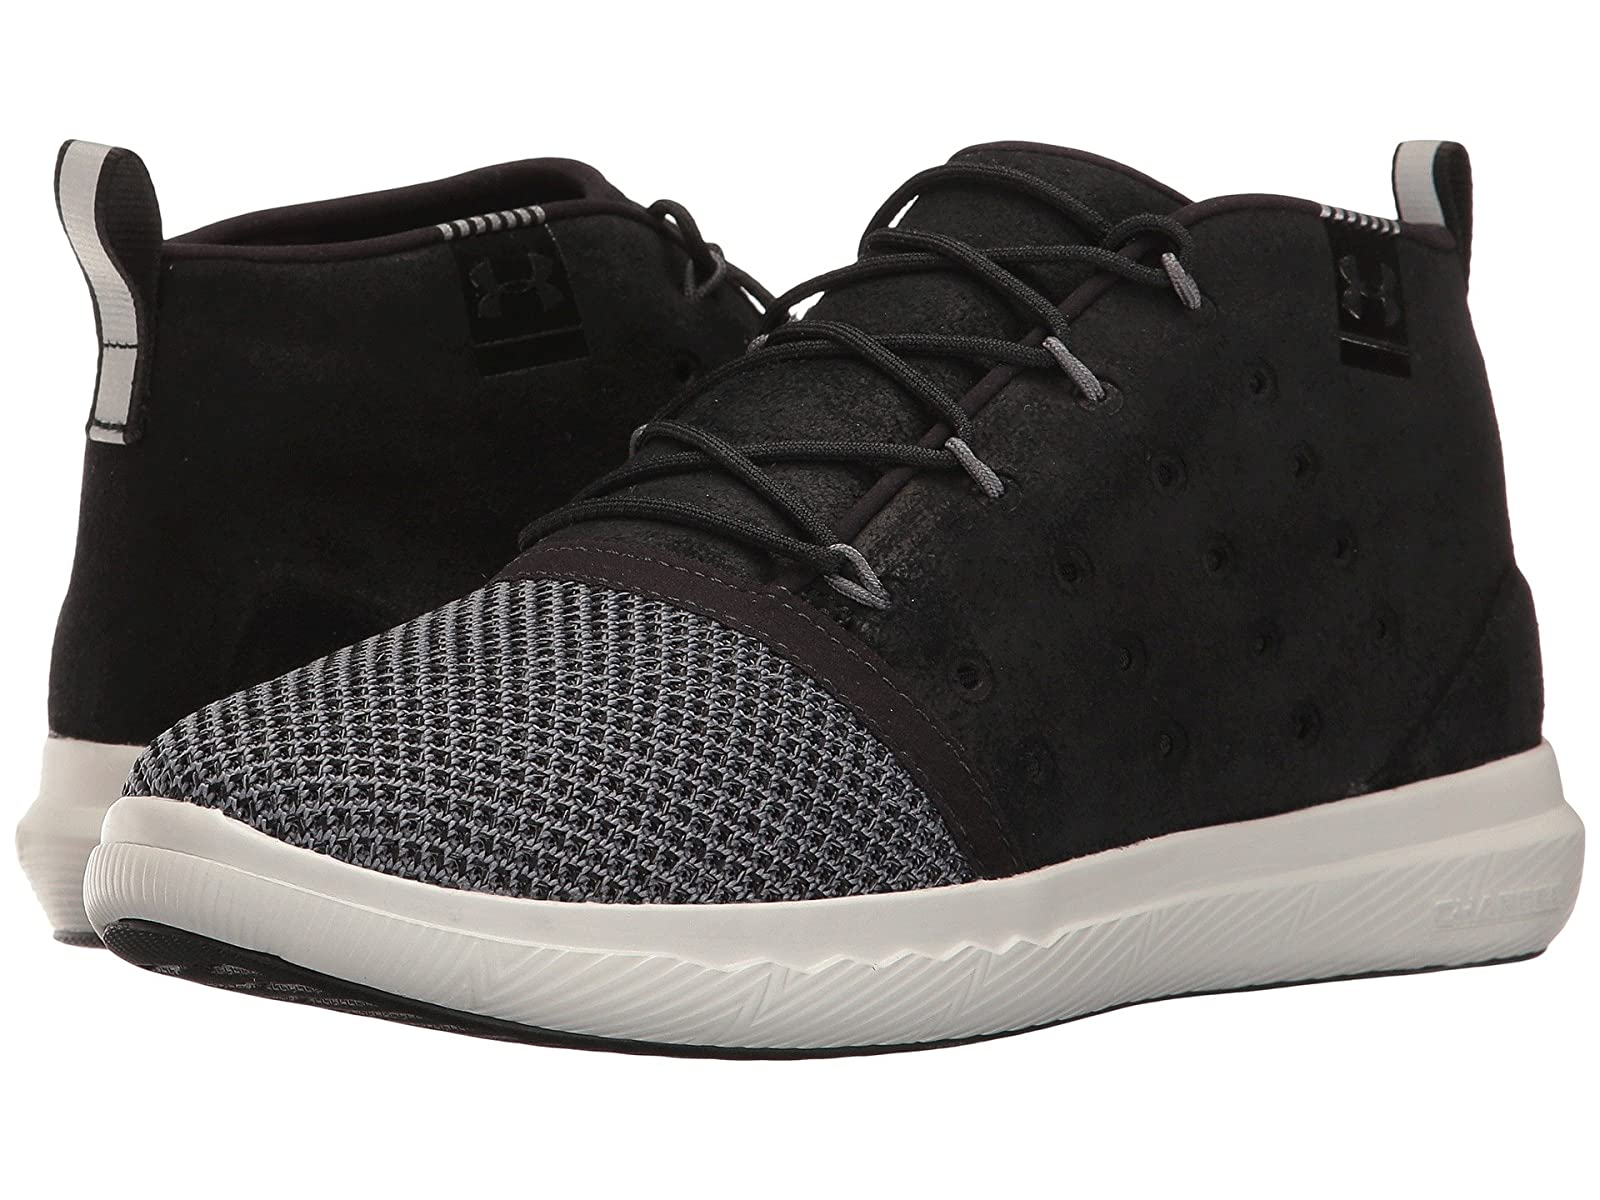 Under Armour UA Charged 24/7 Mid ExplosiveCheap and distinctive eye-catching shoes